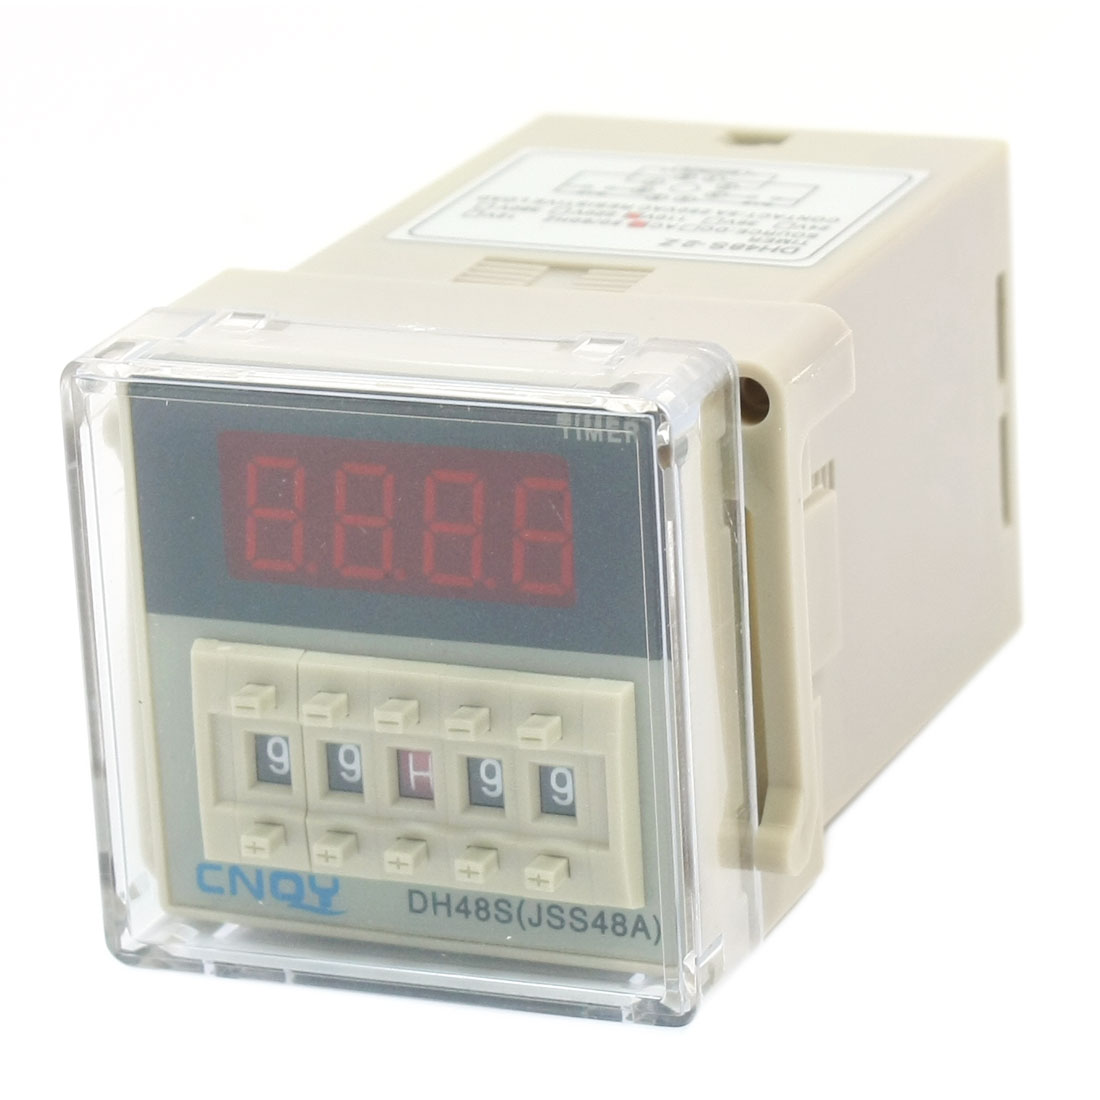 DH48S-2Z AC110V DPDT 0.01s-99M99H 8 Pins Panel Mount Programmable Adjustable Time Delay Delay Timer Relay